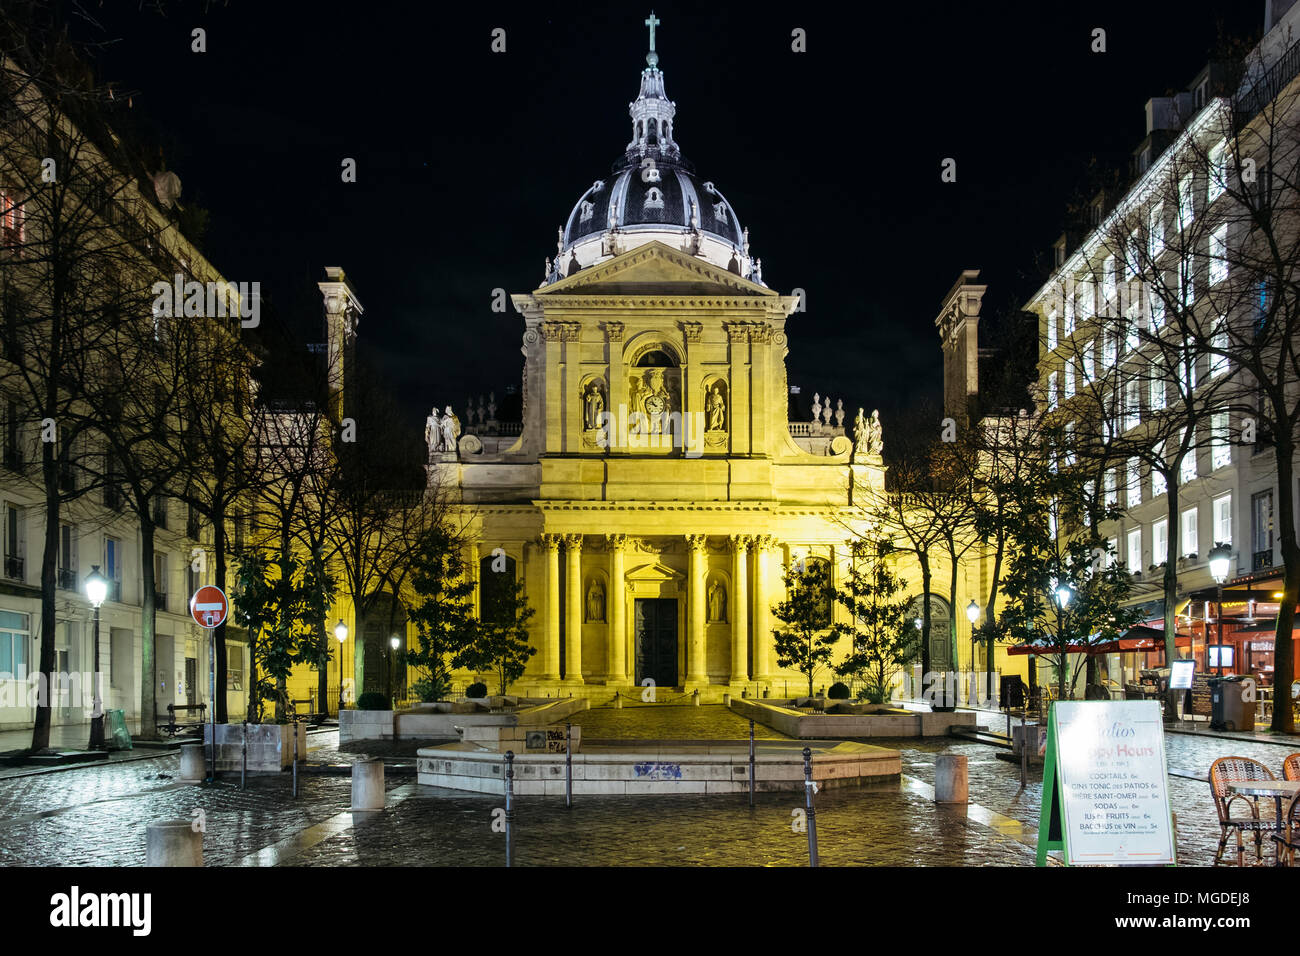 Paris, France. February 11, 2018. The chapel of the Sorbonne University at night. Stock Photo